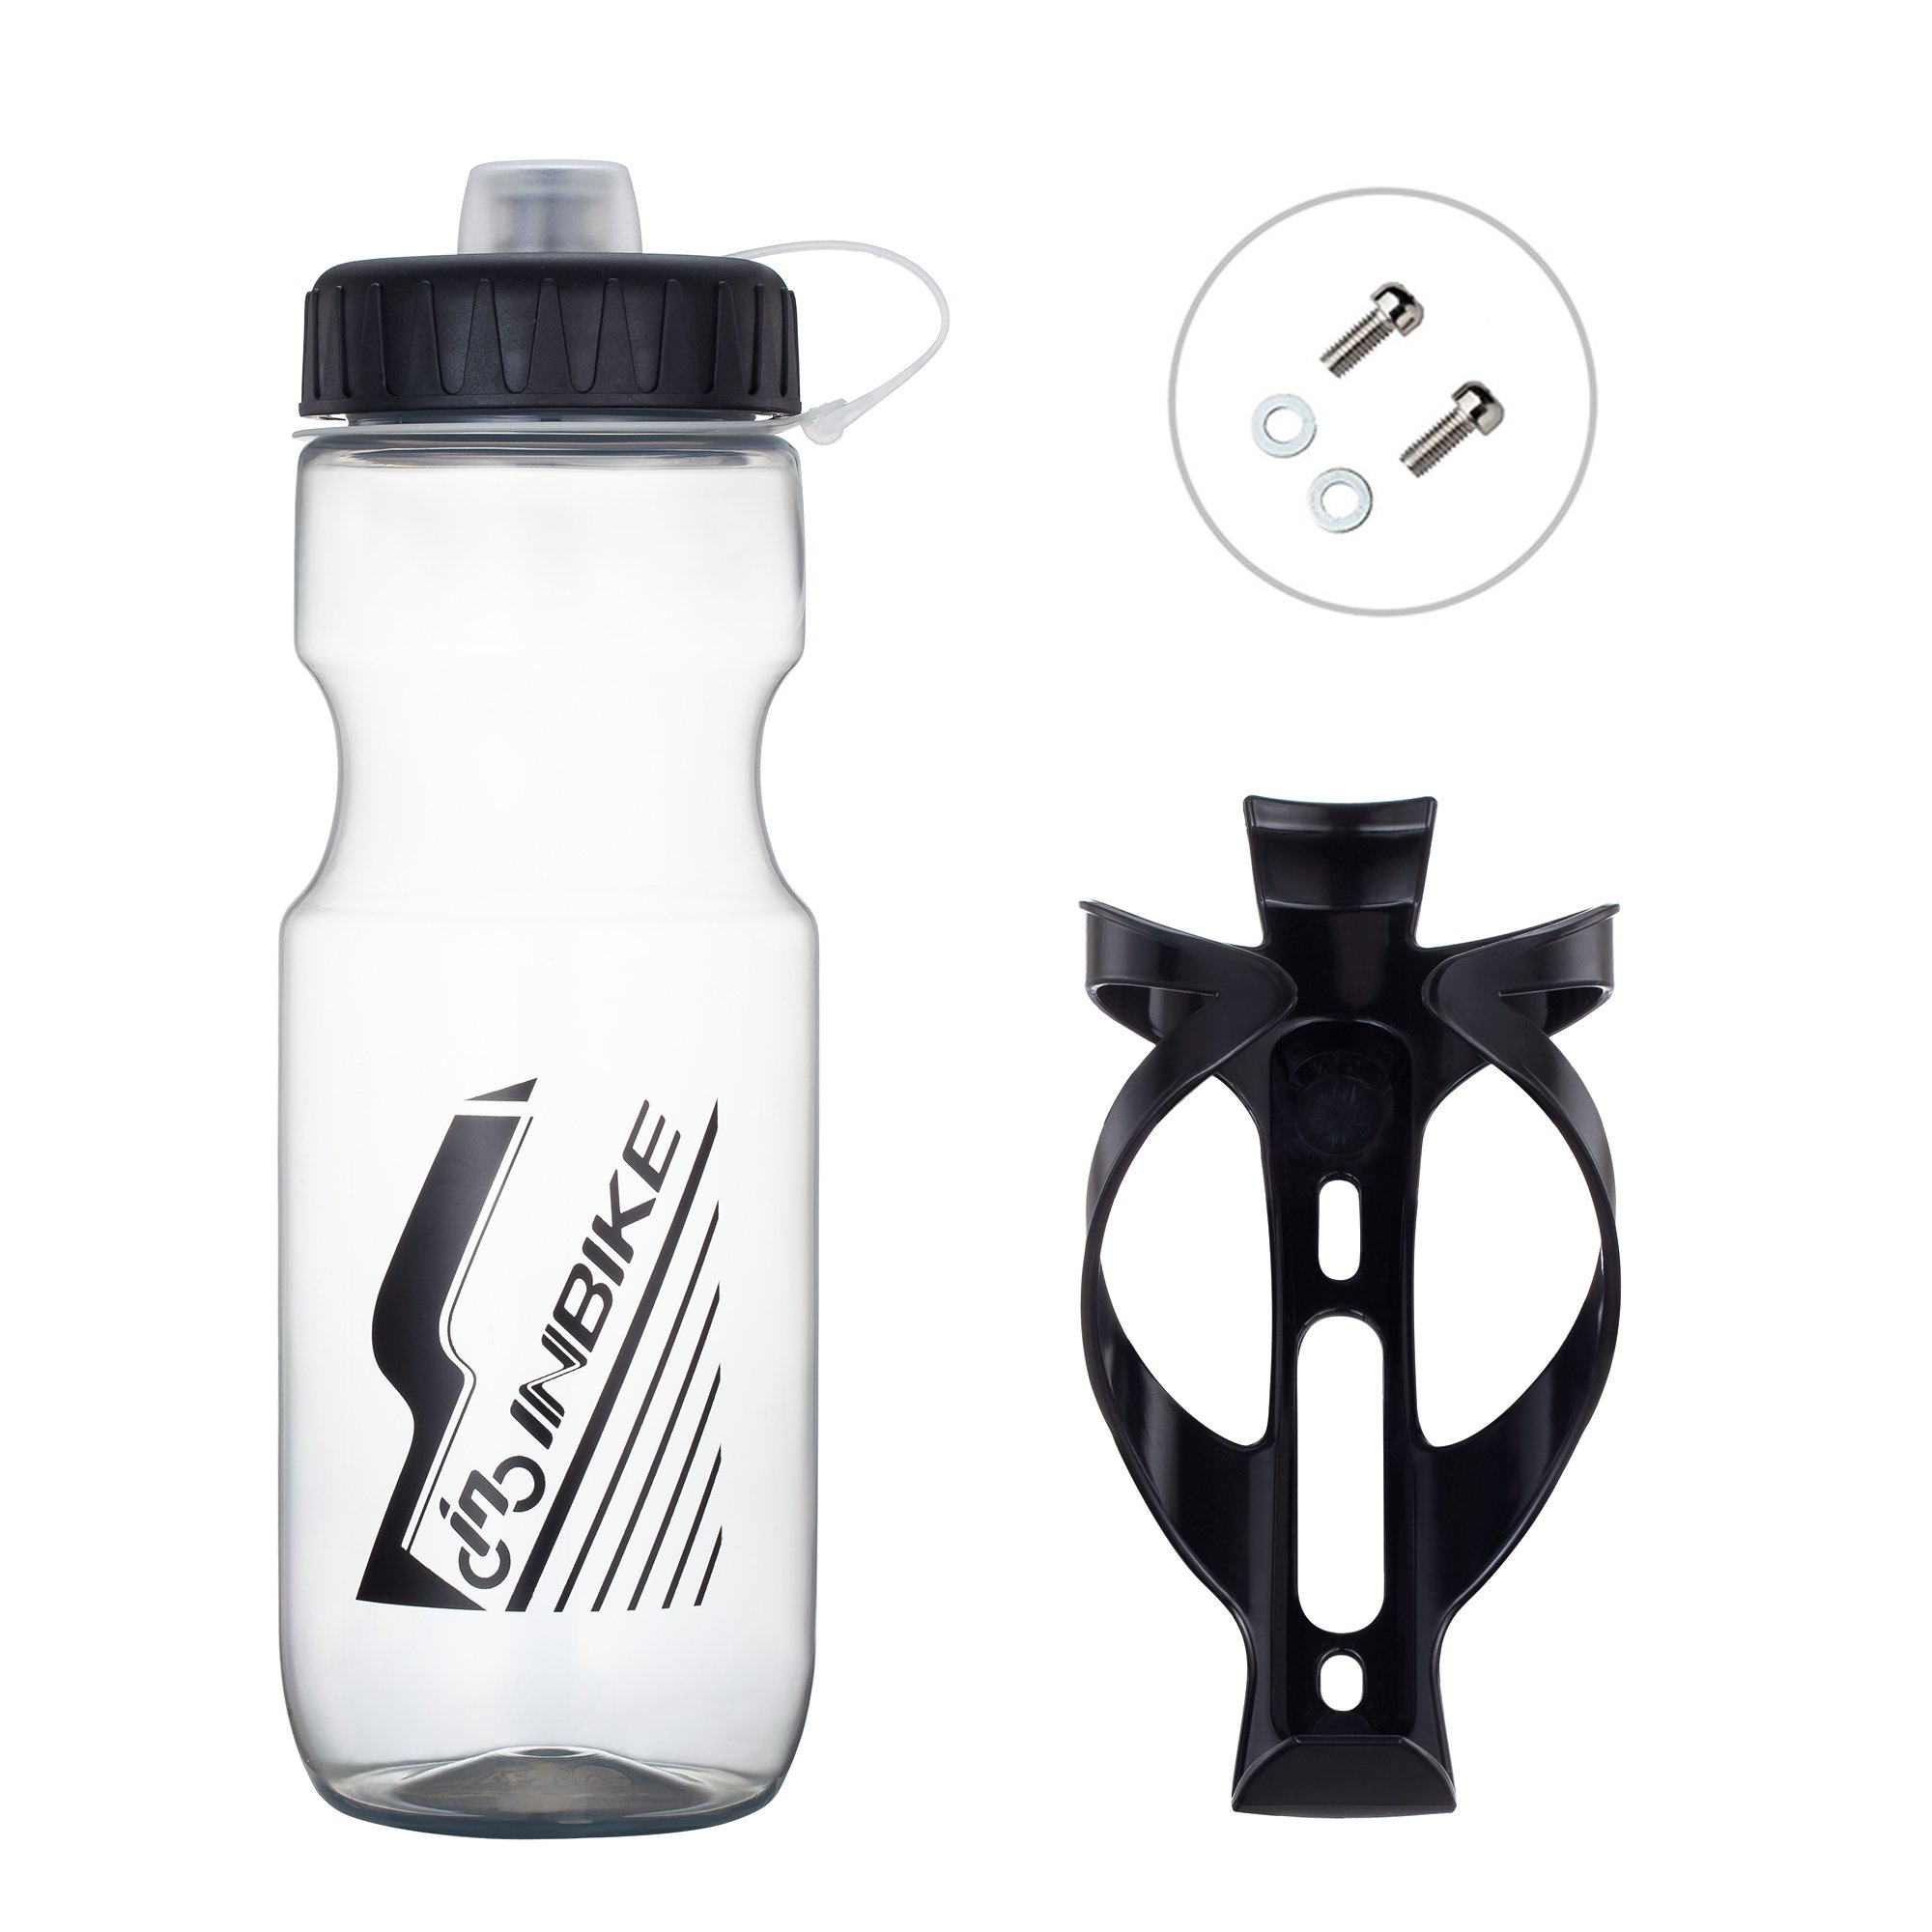 SportAI 700 ml Bike Water Bottle for Gym Workout Come with Basic Mountain Bicycle Bottle Holder Cage Brackets for Outdoor Cycling